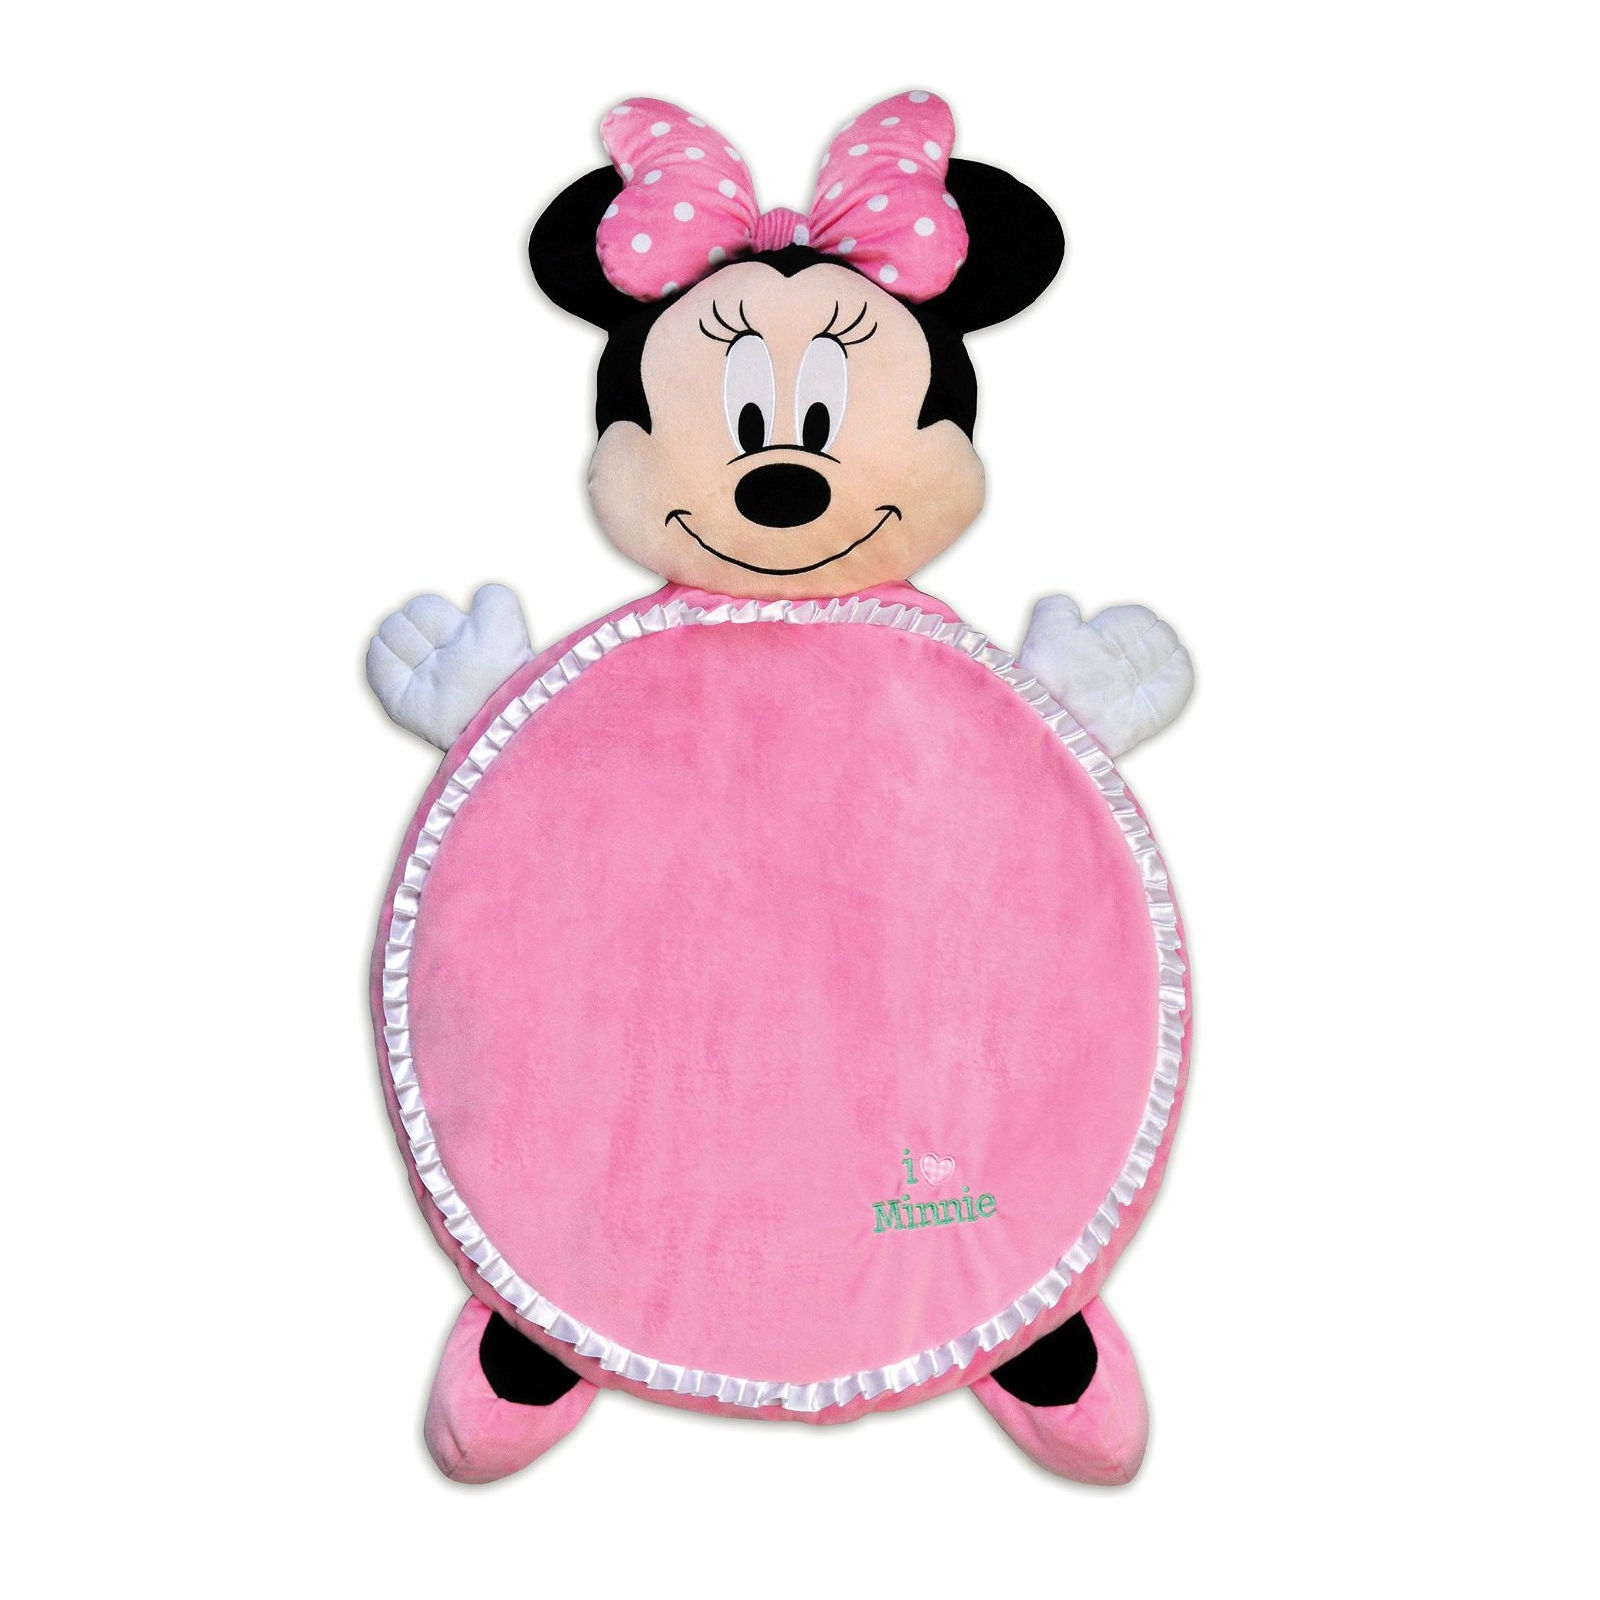 Minnie Mouse Baby Clothes and Products | Disney Baby